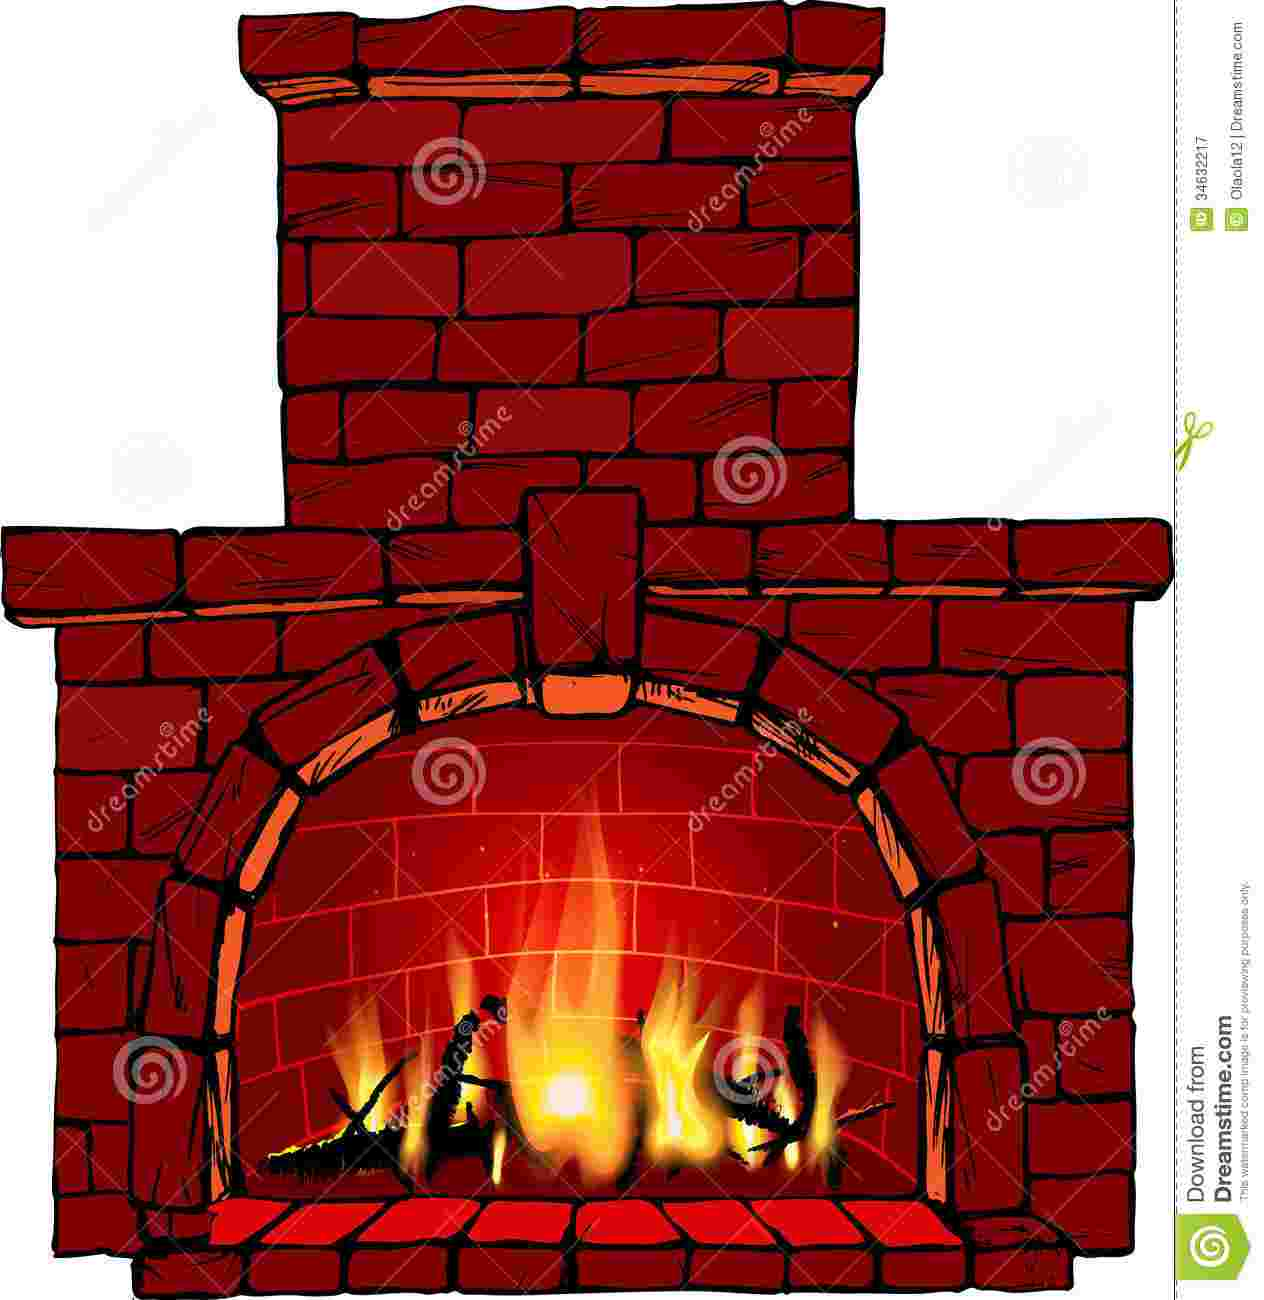 Best Cliparts: Fireplace Clipart Pic Top Fireplace Clip Art.